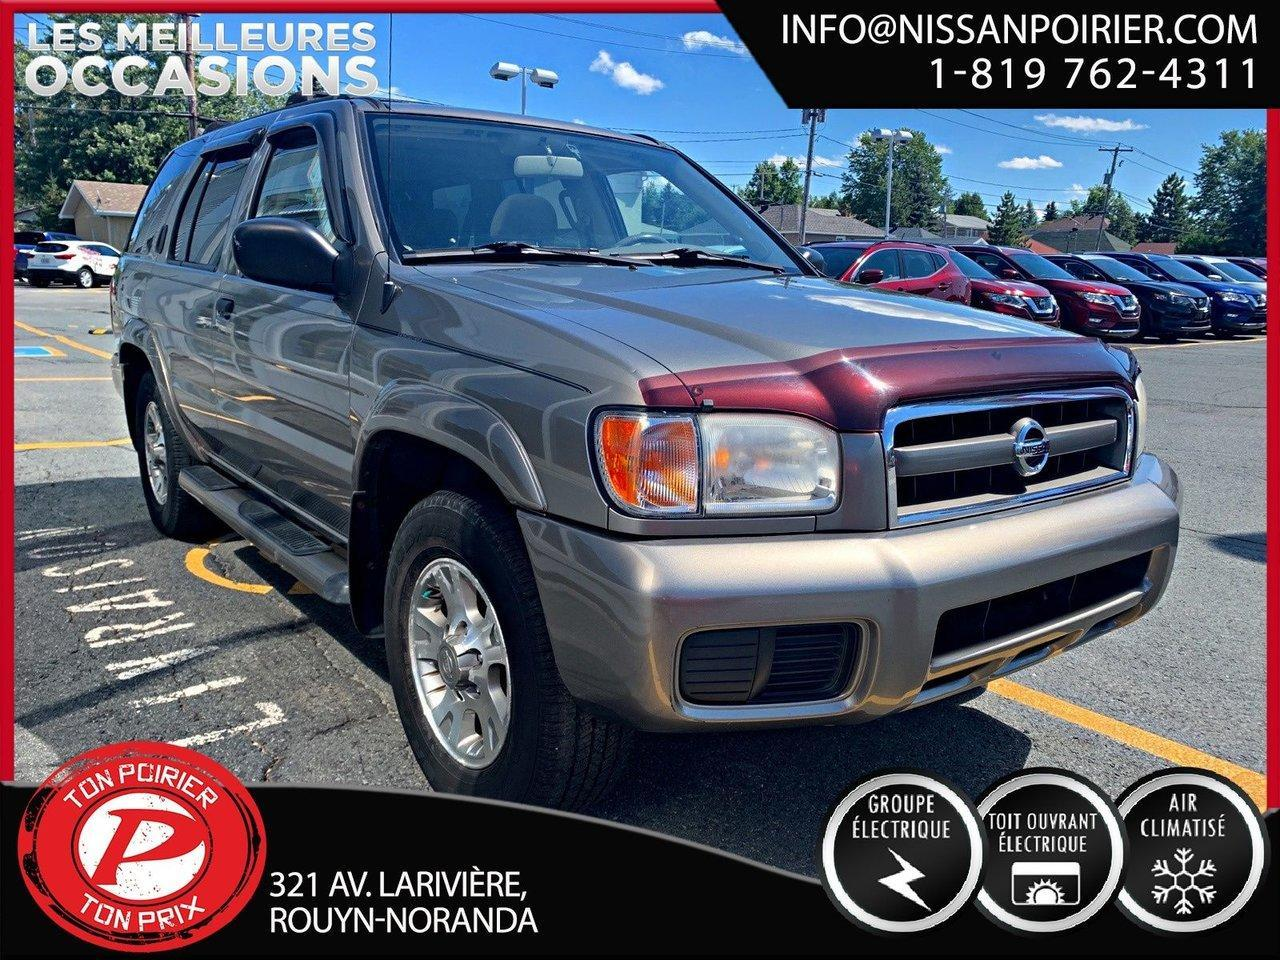 used 2004 nissan pathfinder chinook for sale in rouyn-noranda, quebec carpages.ca